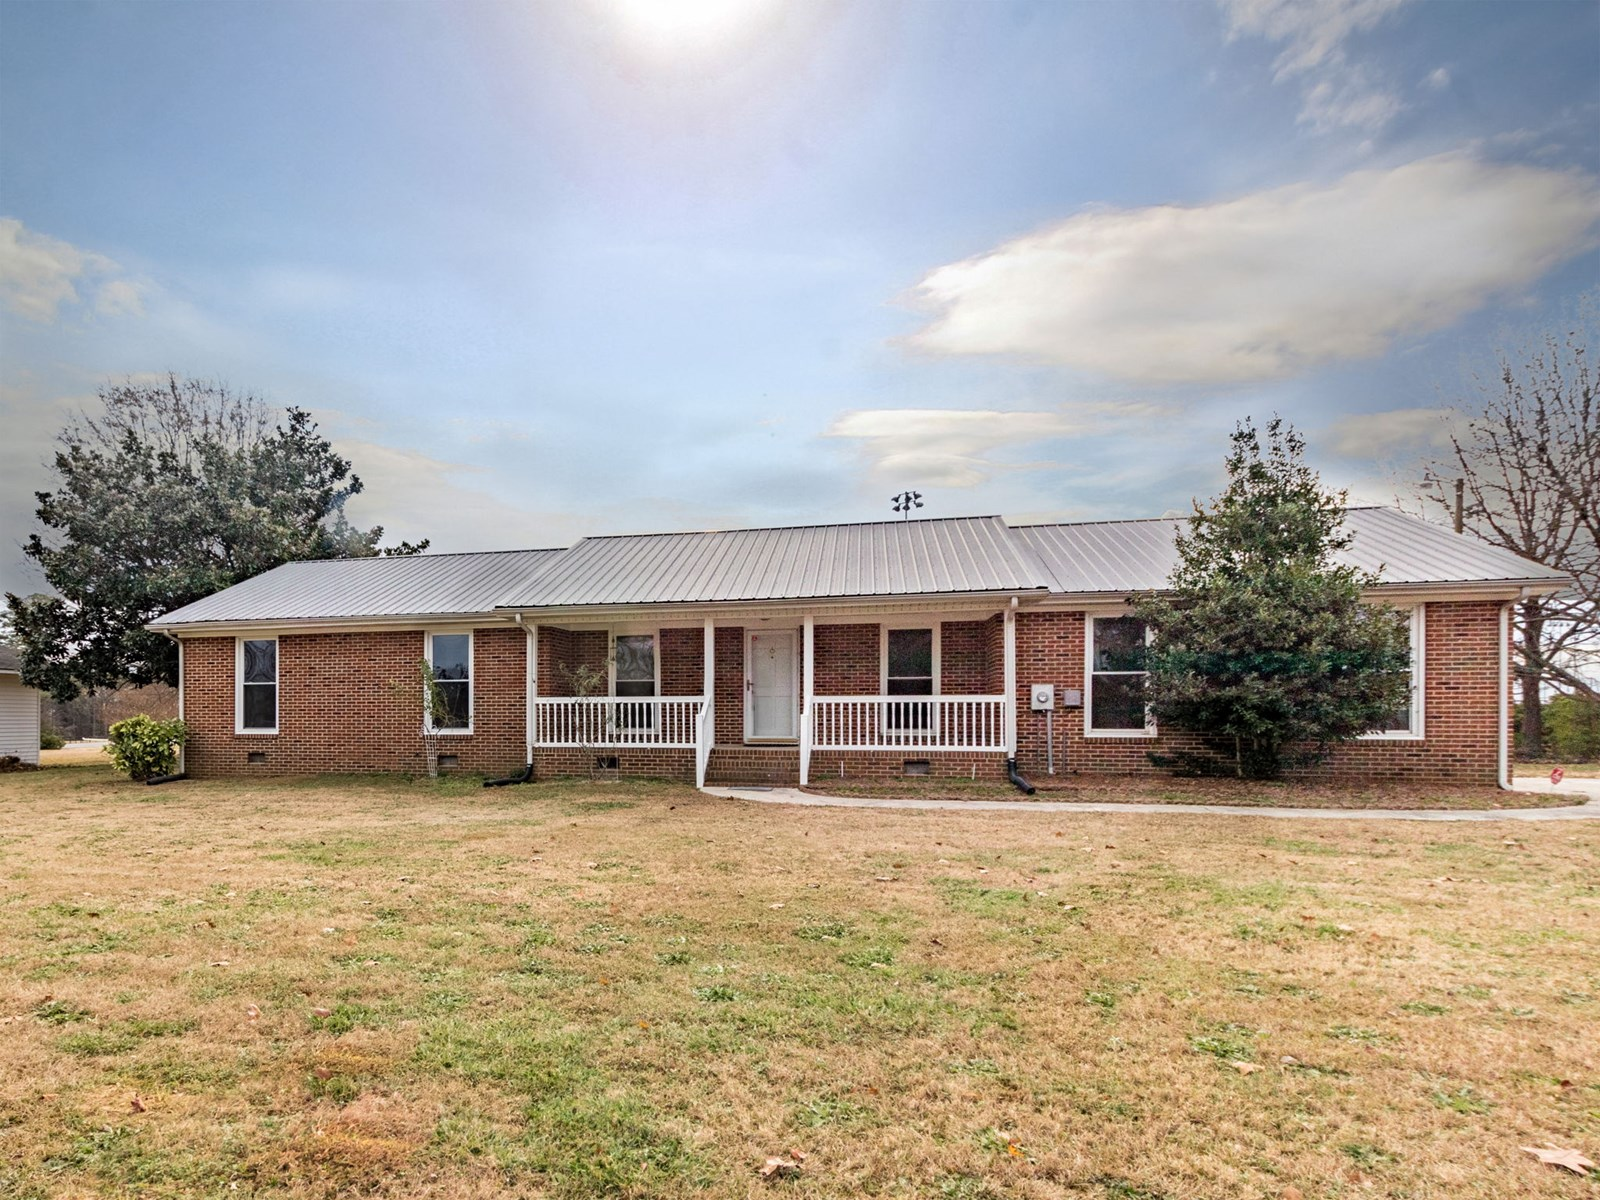 3BR, 2BA Brick Ranch For Sale in Sanford, NC